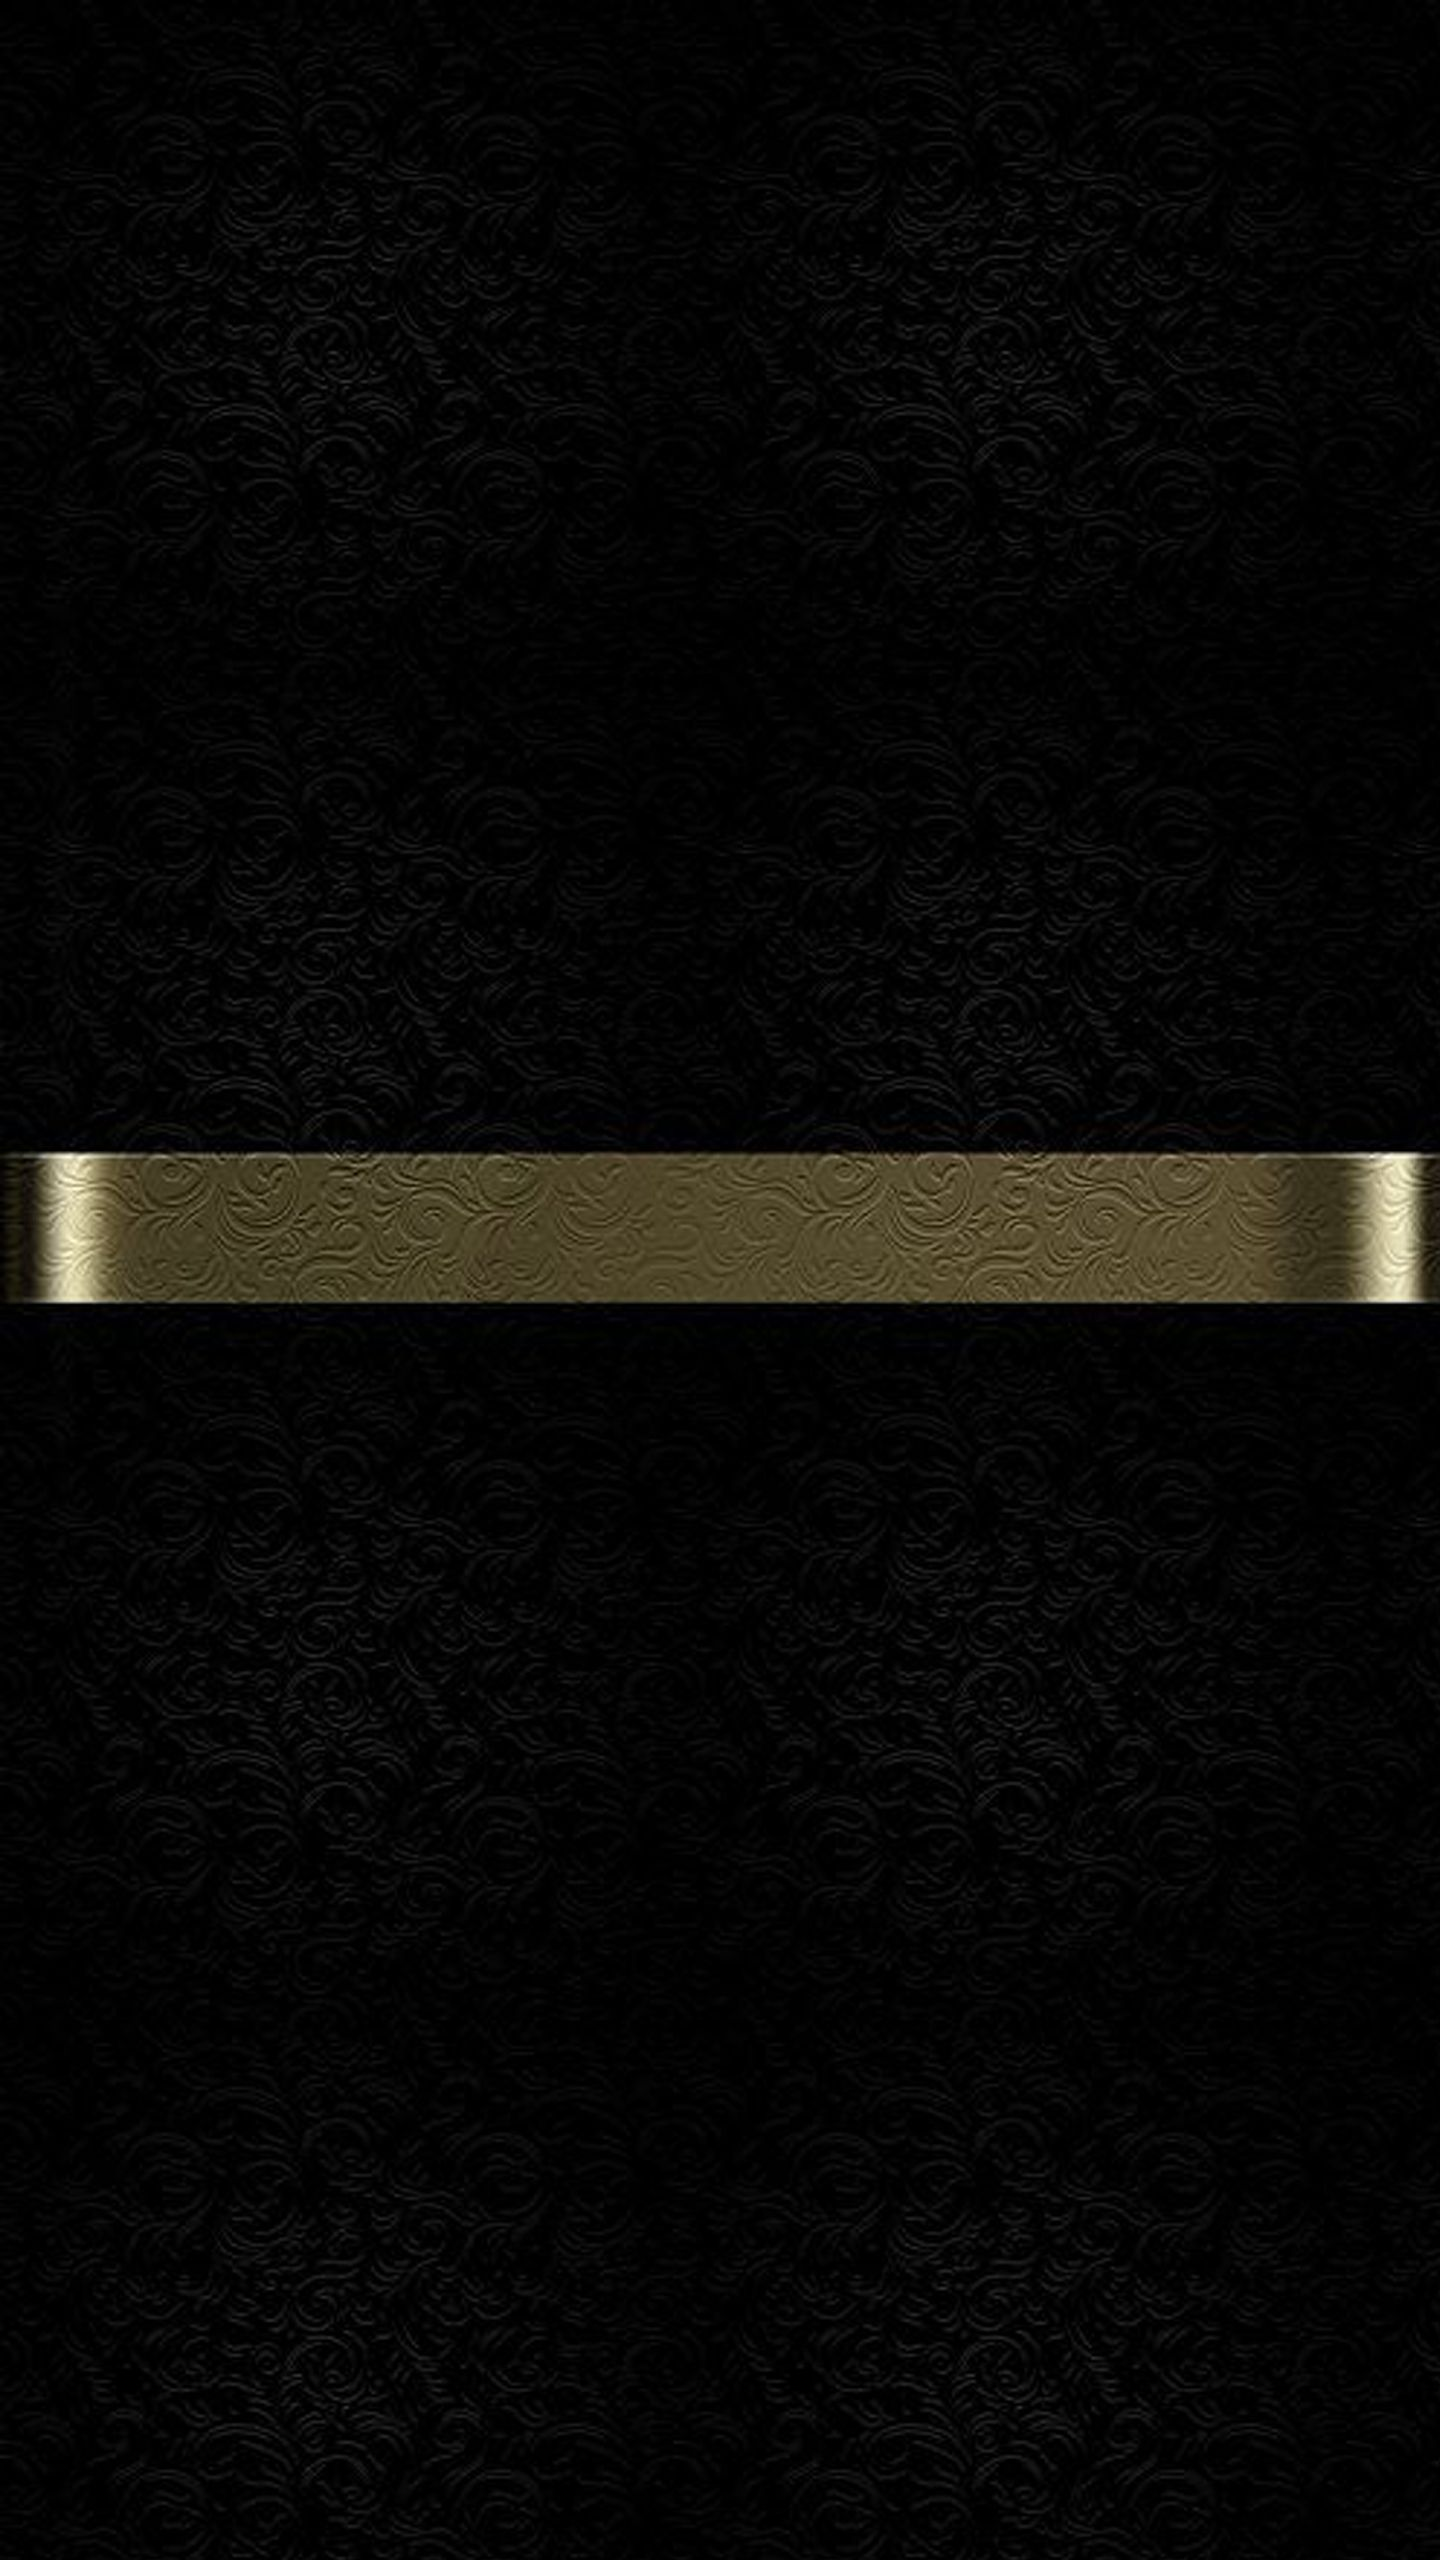 Dark S7 Edge Wallpaper 09 Black Background And Gold Line With Floral Texture Hd Wallpapers Wallpapers Download High Resolution Wallpapers Gold Wallpaper Android Floral Texture Samsung Wallpaper